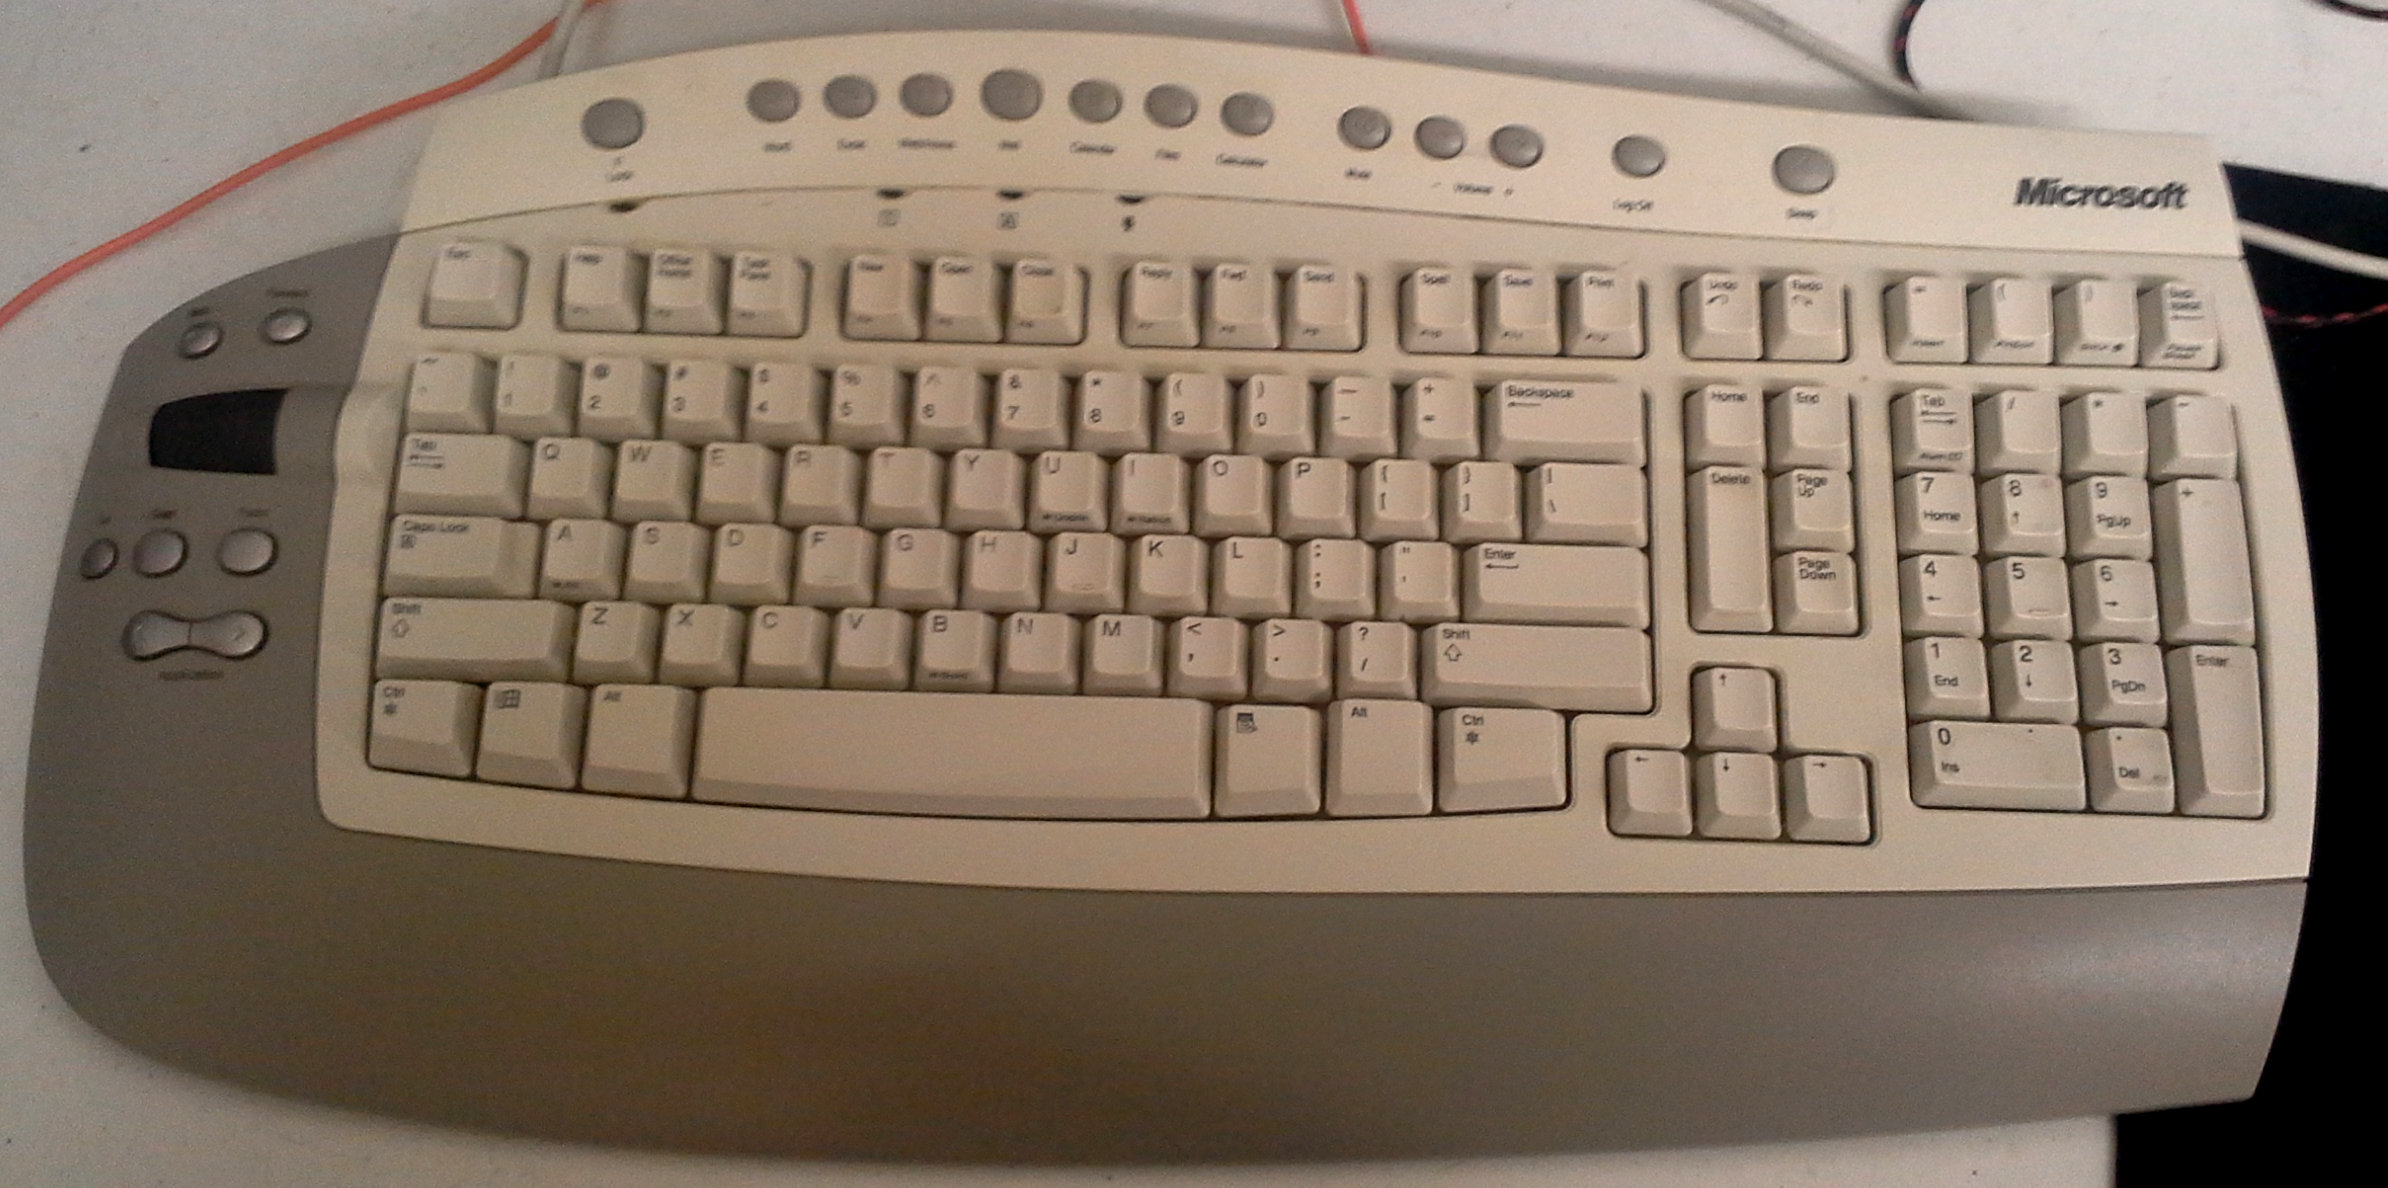 Microsoft_Office_Keyboard.jpg